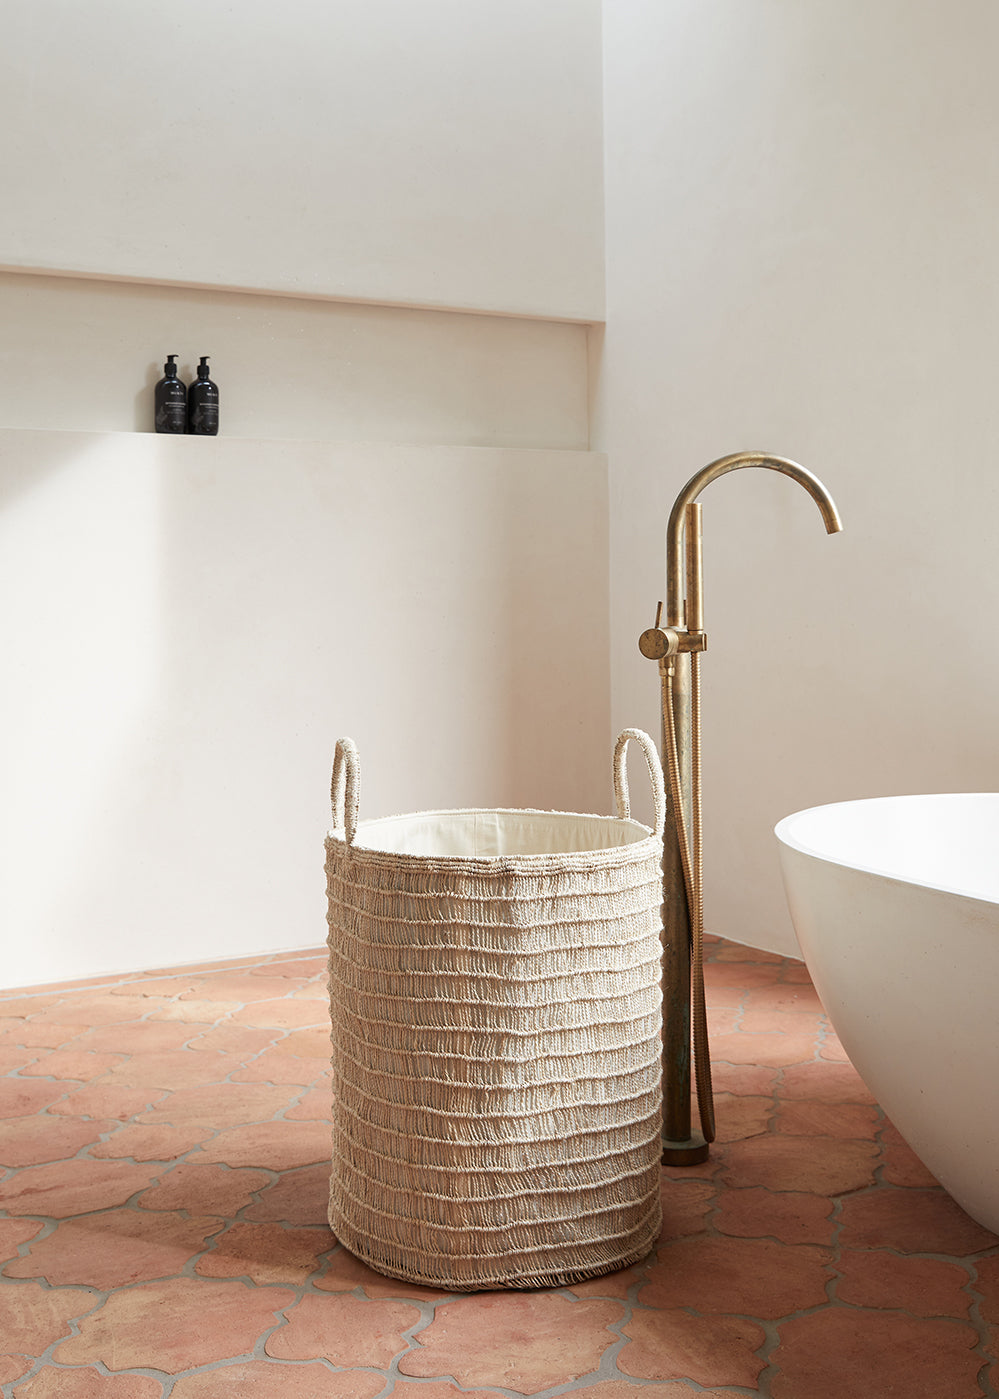 Natural jute laundry basket used to organise in bathroom